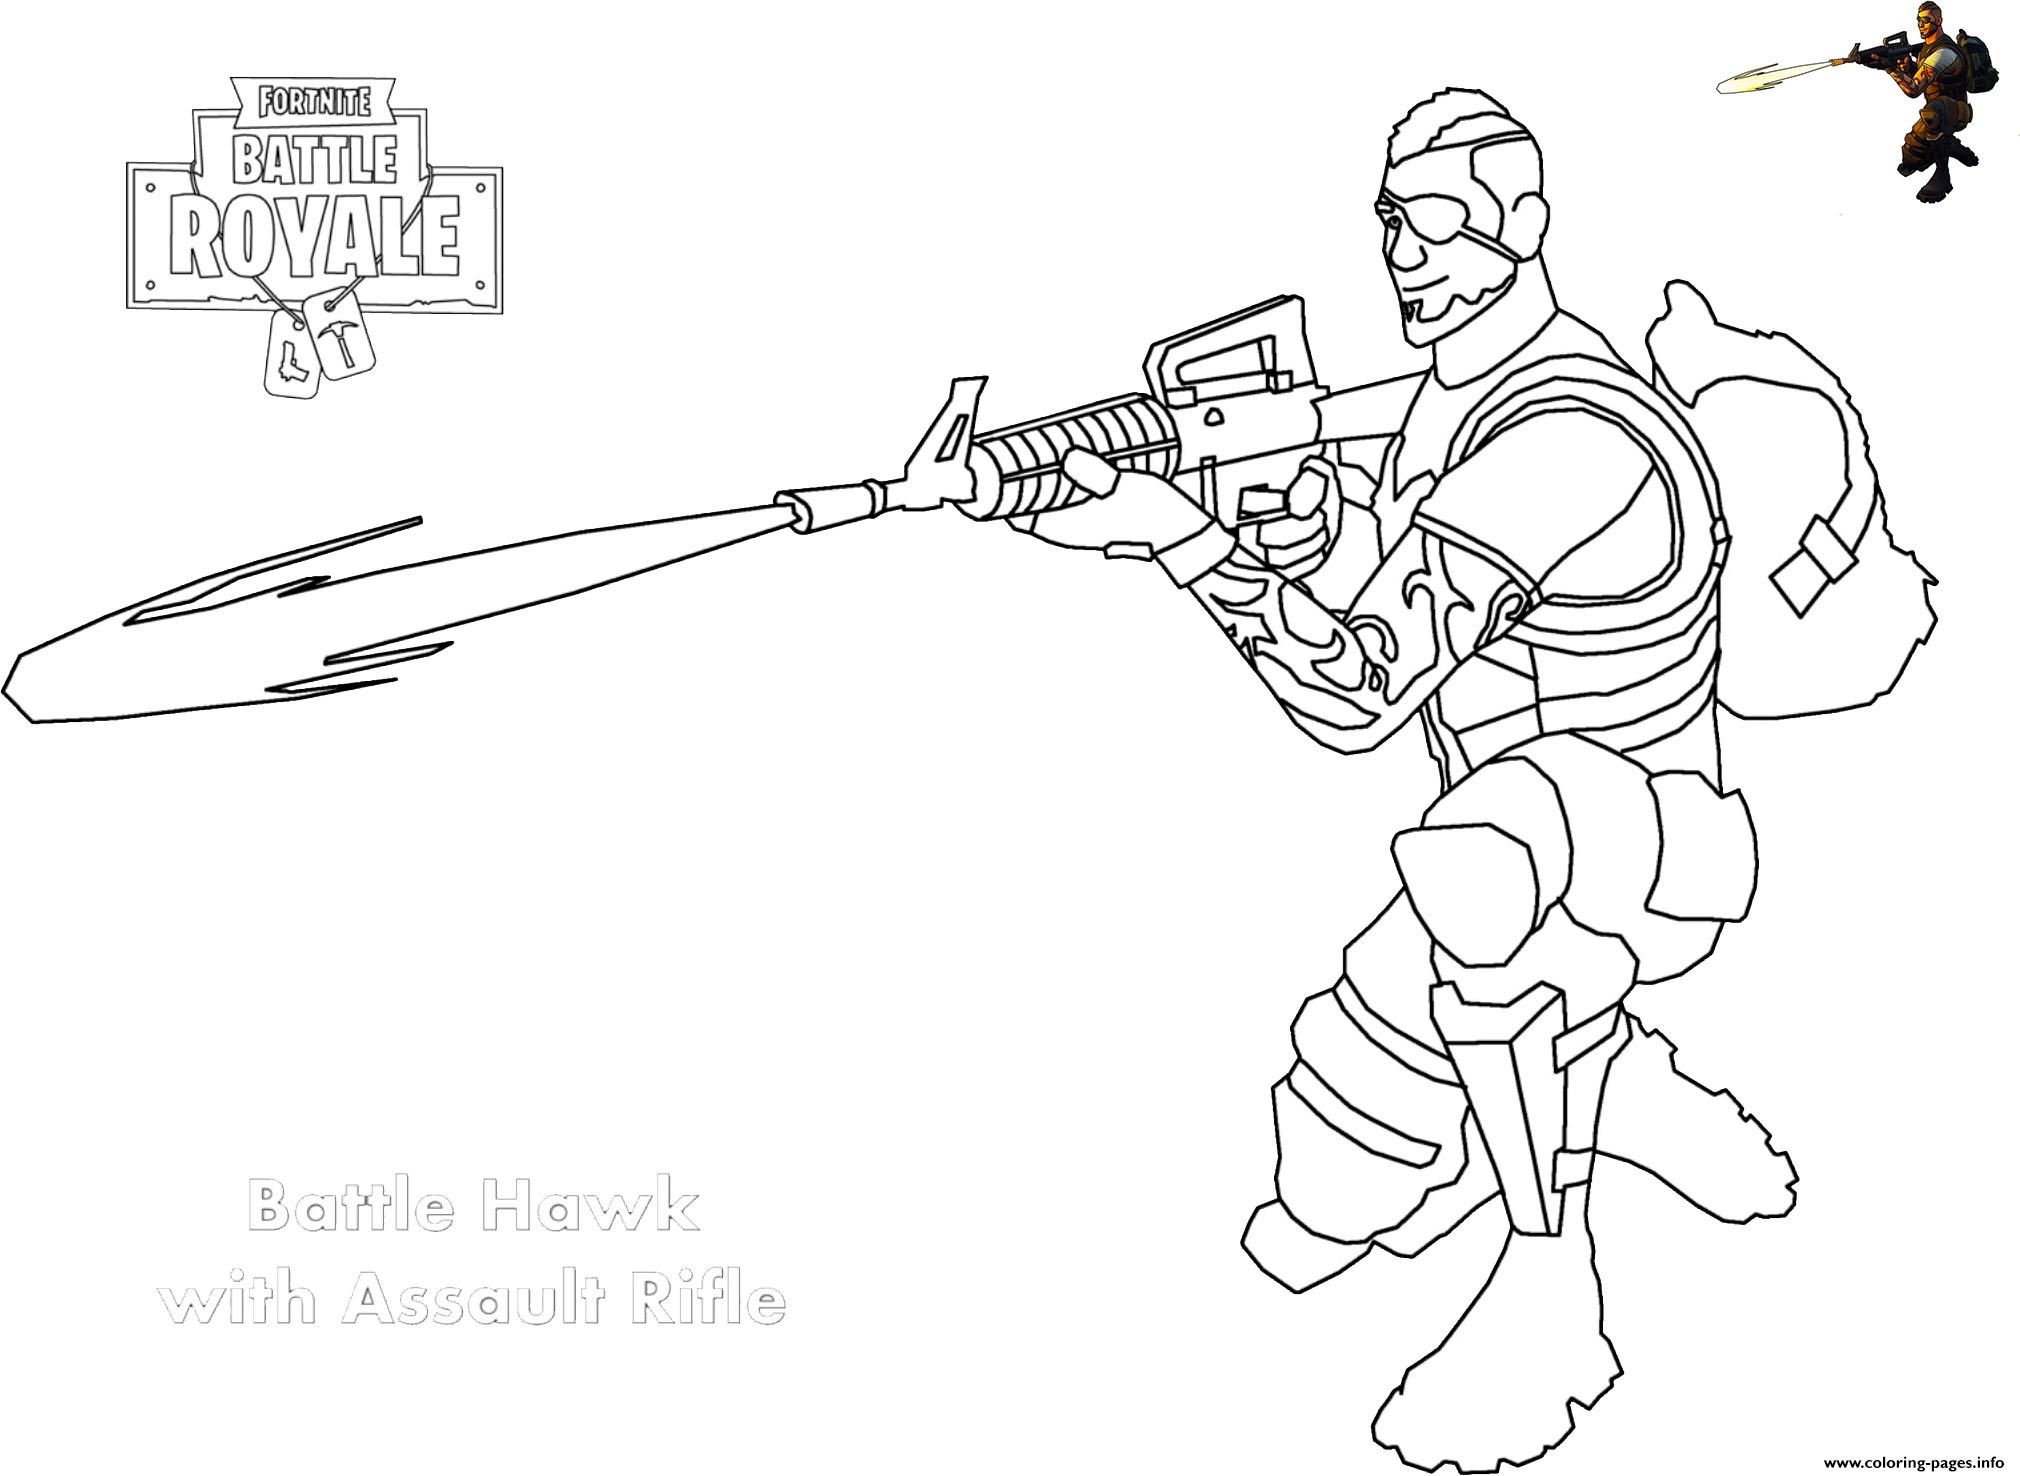 Game Para Colorear: Assault Rifle Shot Fortnite Coloring Pages Printable